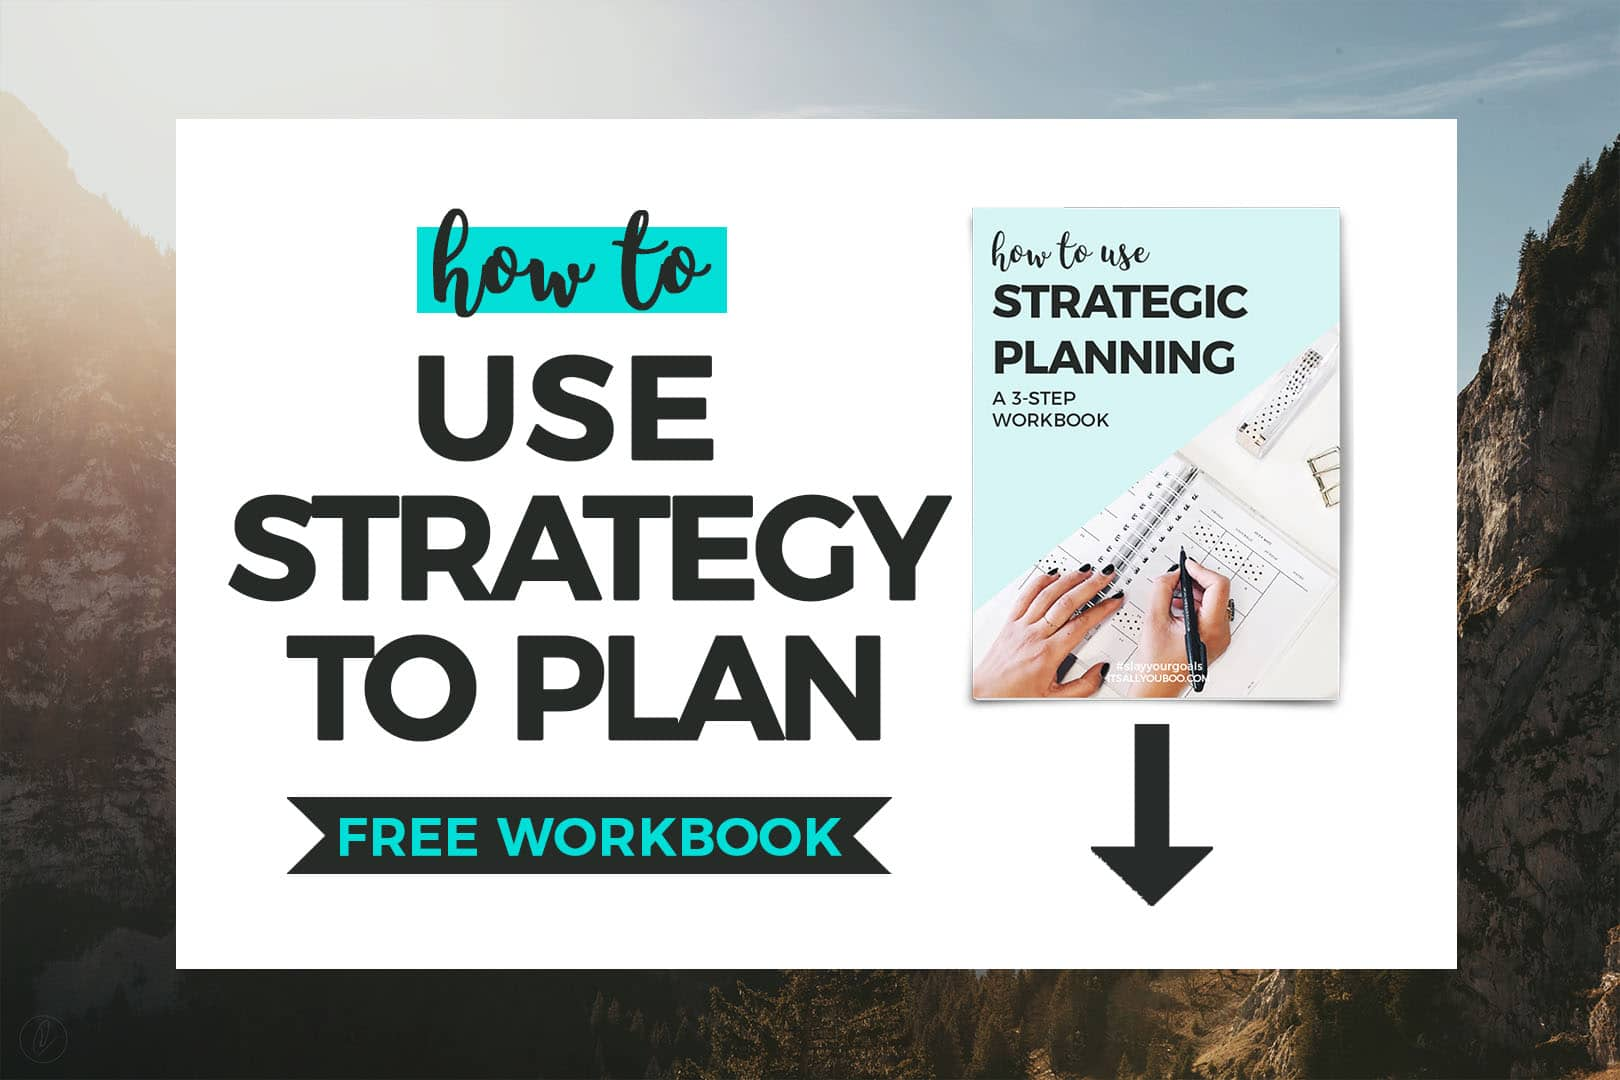 How to Use Strategy to Plan FREE WORKBOOK + Preview